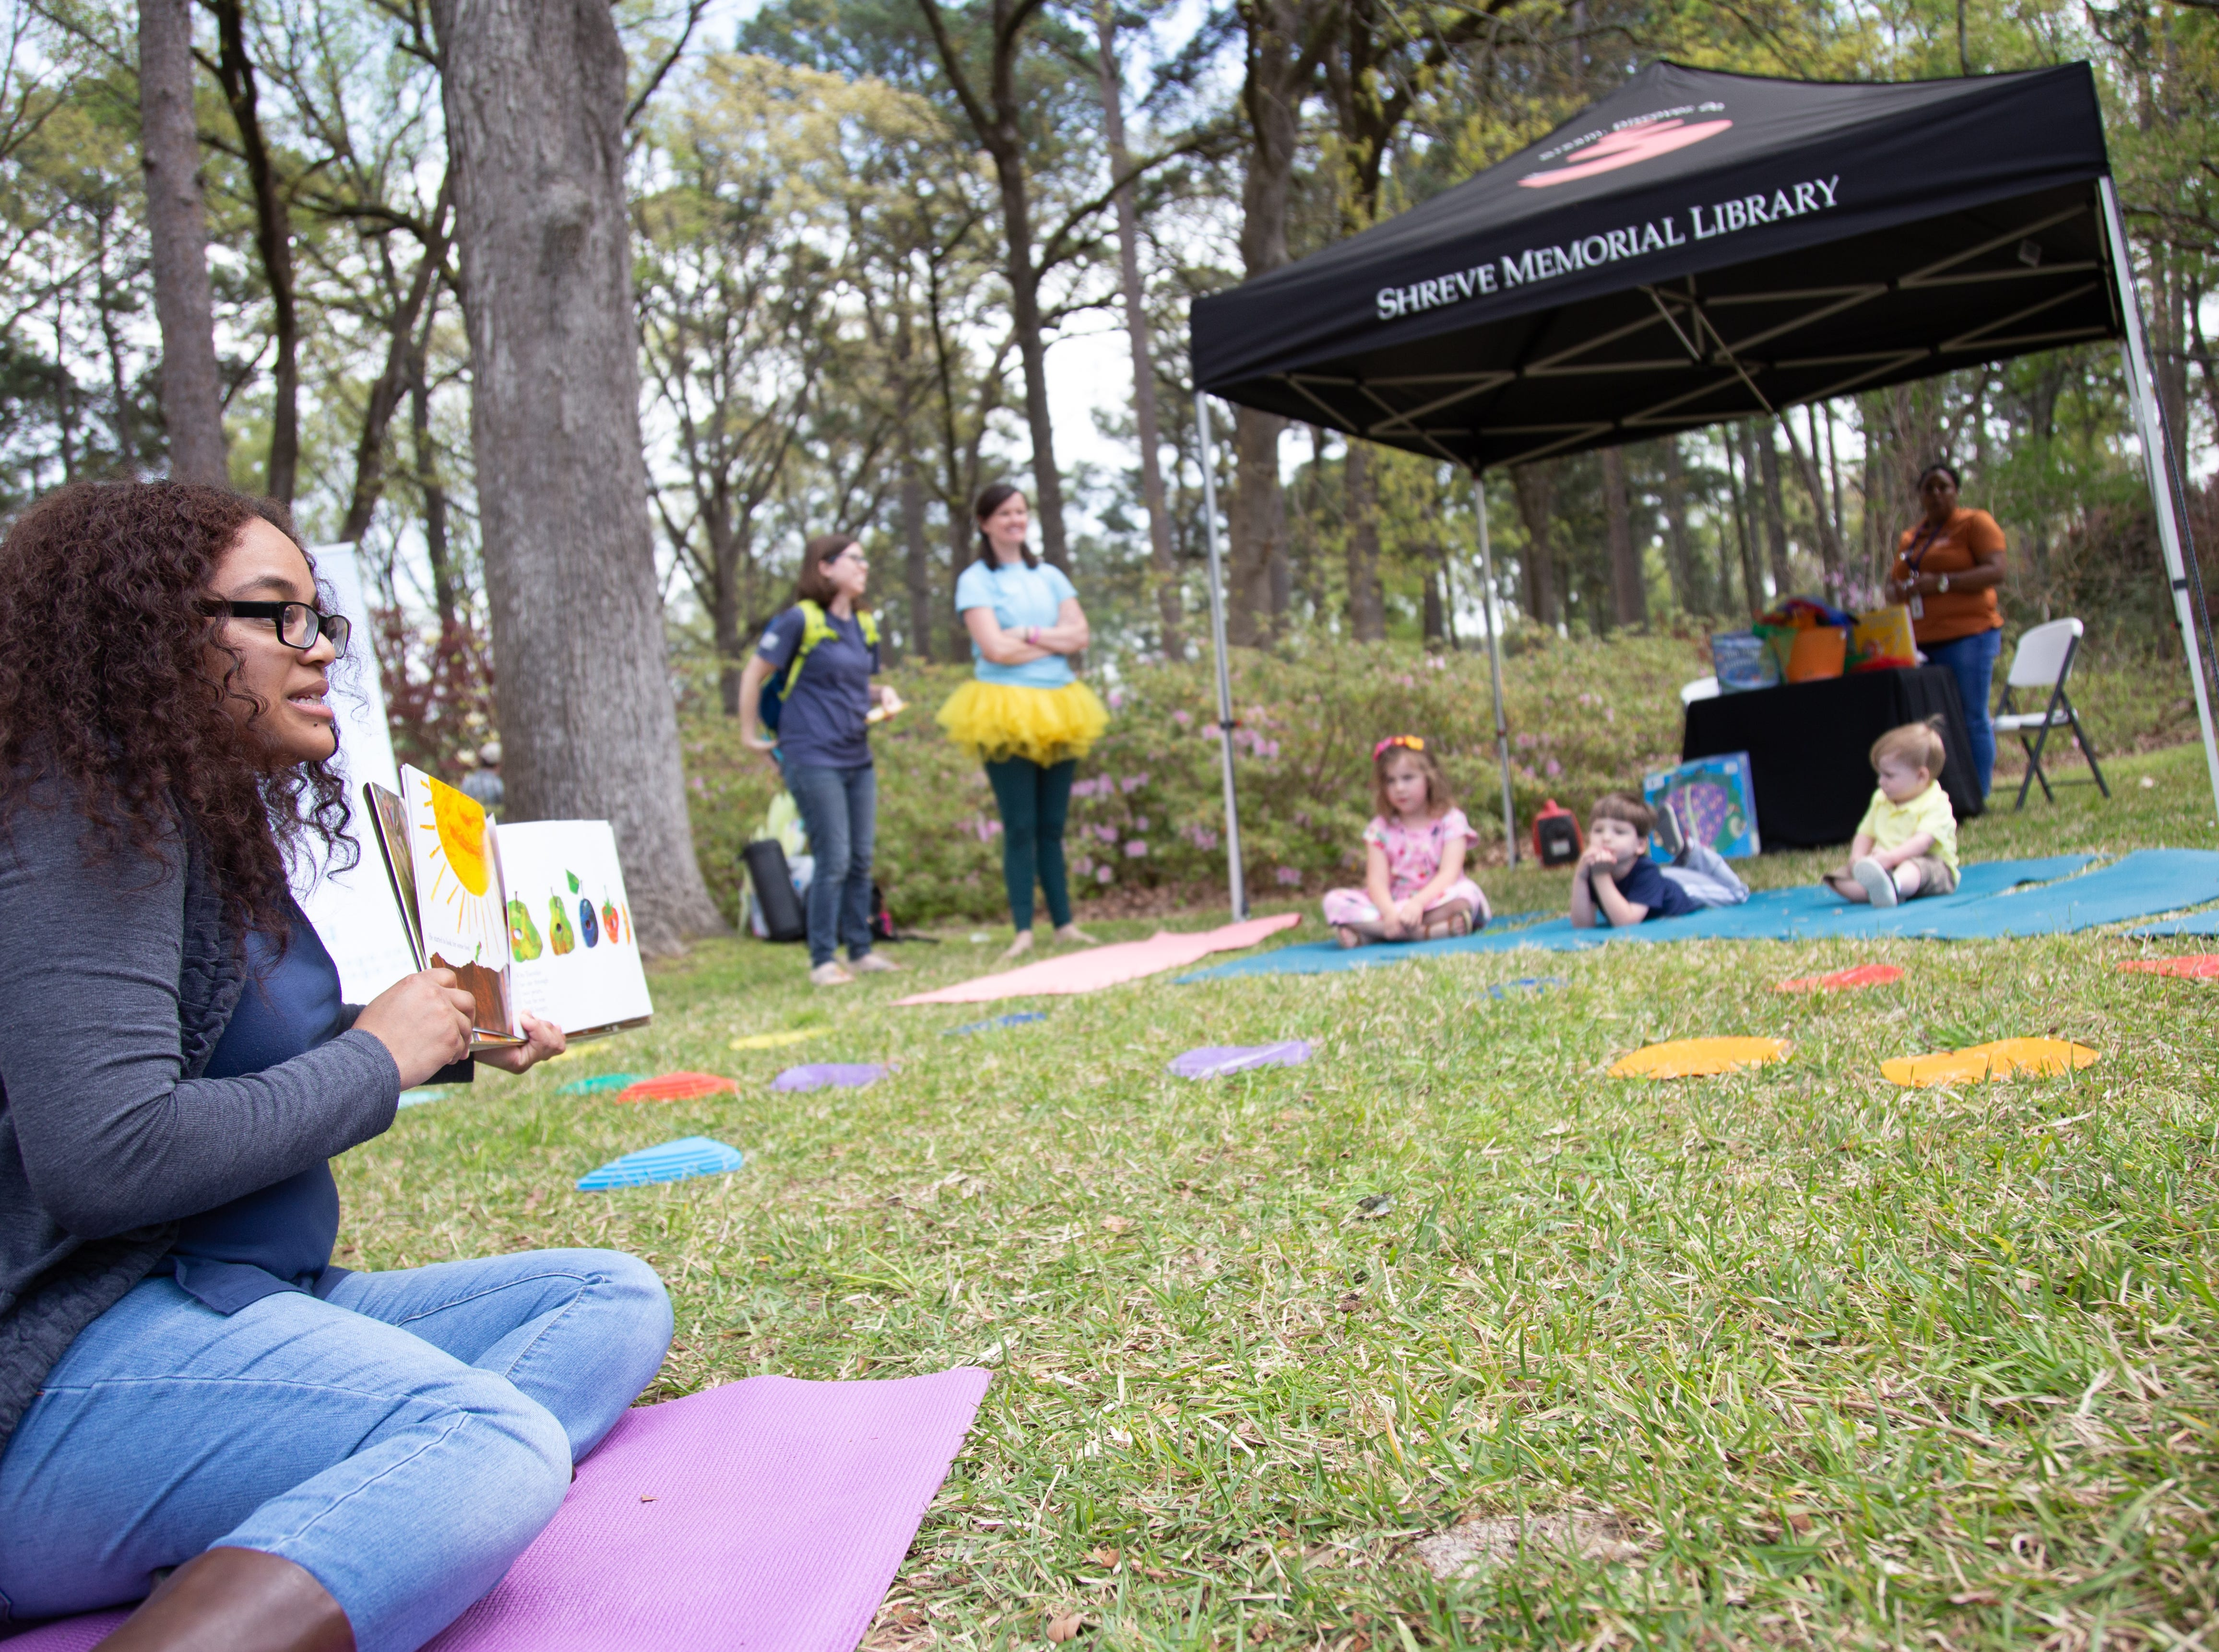 Bloom! festival was held at the Norton Art Gallery gardens March 23, 2019 in Shreveport.